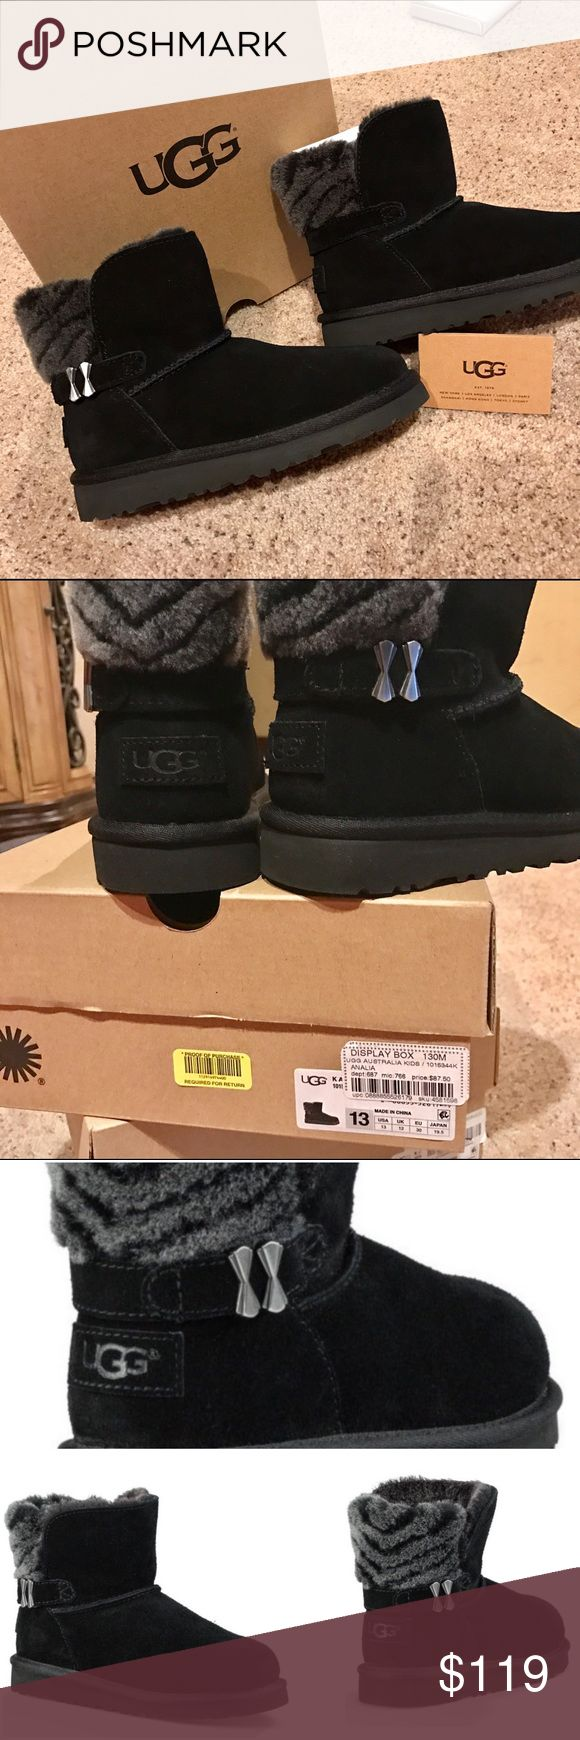 NEW UGG Analia Short Boots 13 Brand new UGG boots in girls size 13.  Comes in original UGG box with authenticity booklet.  Purchased locally can guarantee authenticity.  Analia boot has black suede leather uppers with grey and black striped wool/sheepskin interior.  Super warm.  Double bow buckle on sides. UGG Shoes Boots